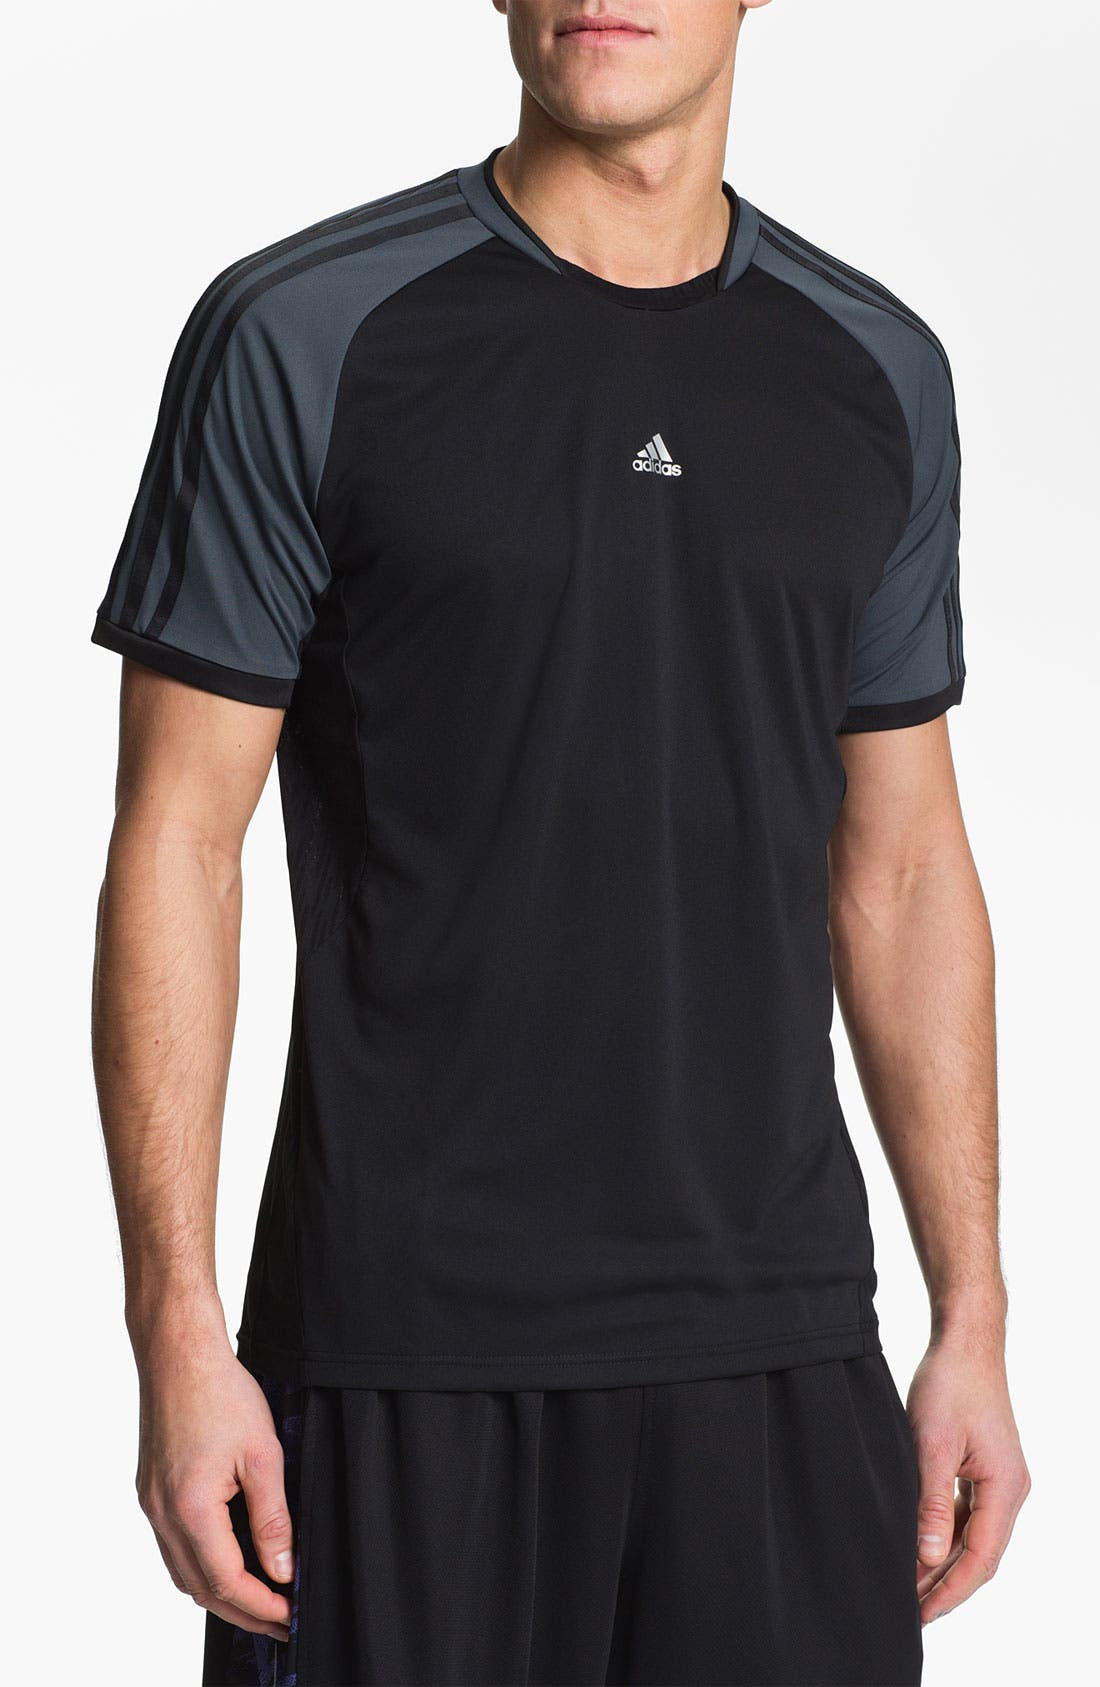 '365 Core' CLIMACOOL<sup>®</sup> T-Shirt,                         Main,                         color, 001